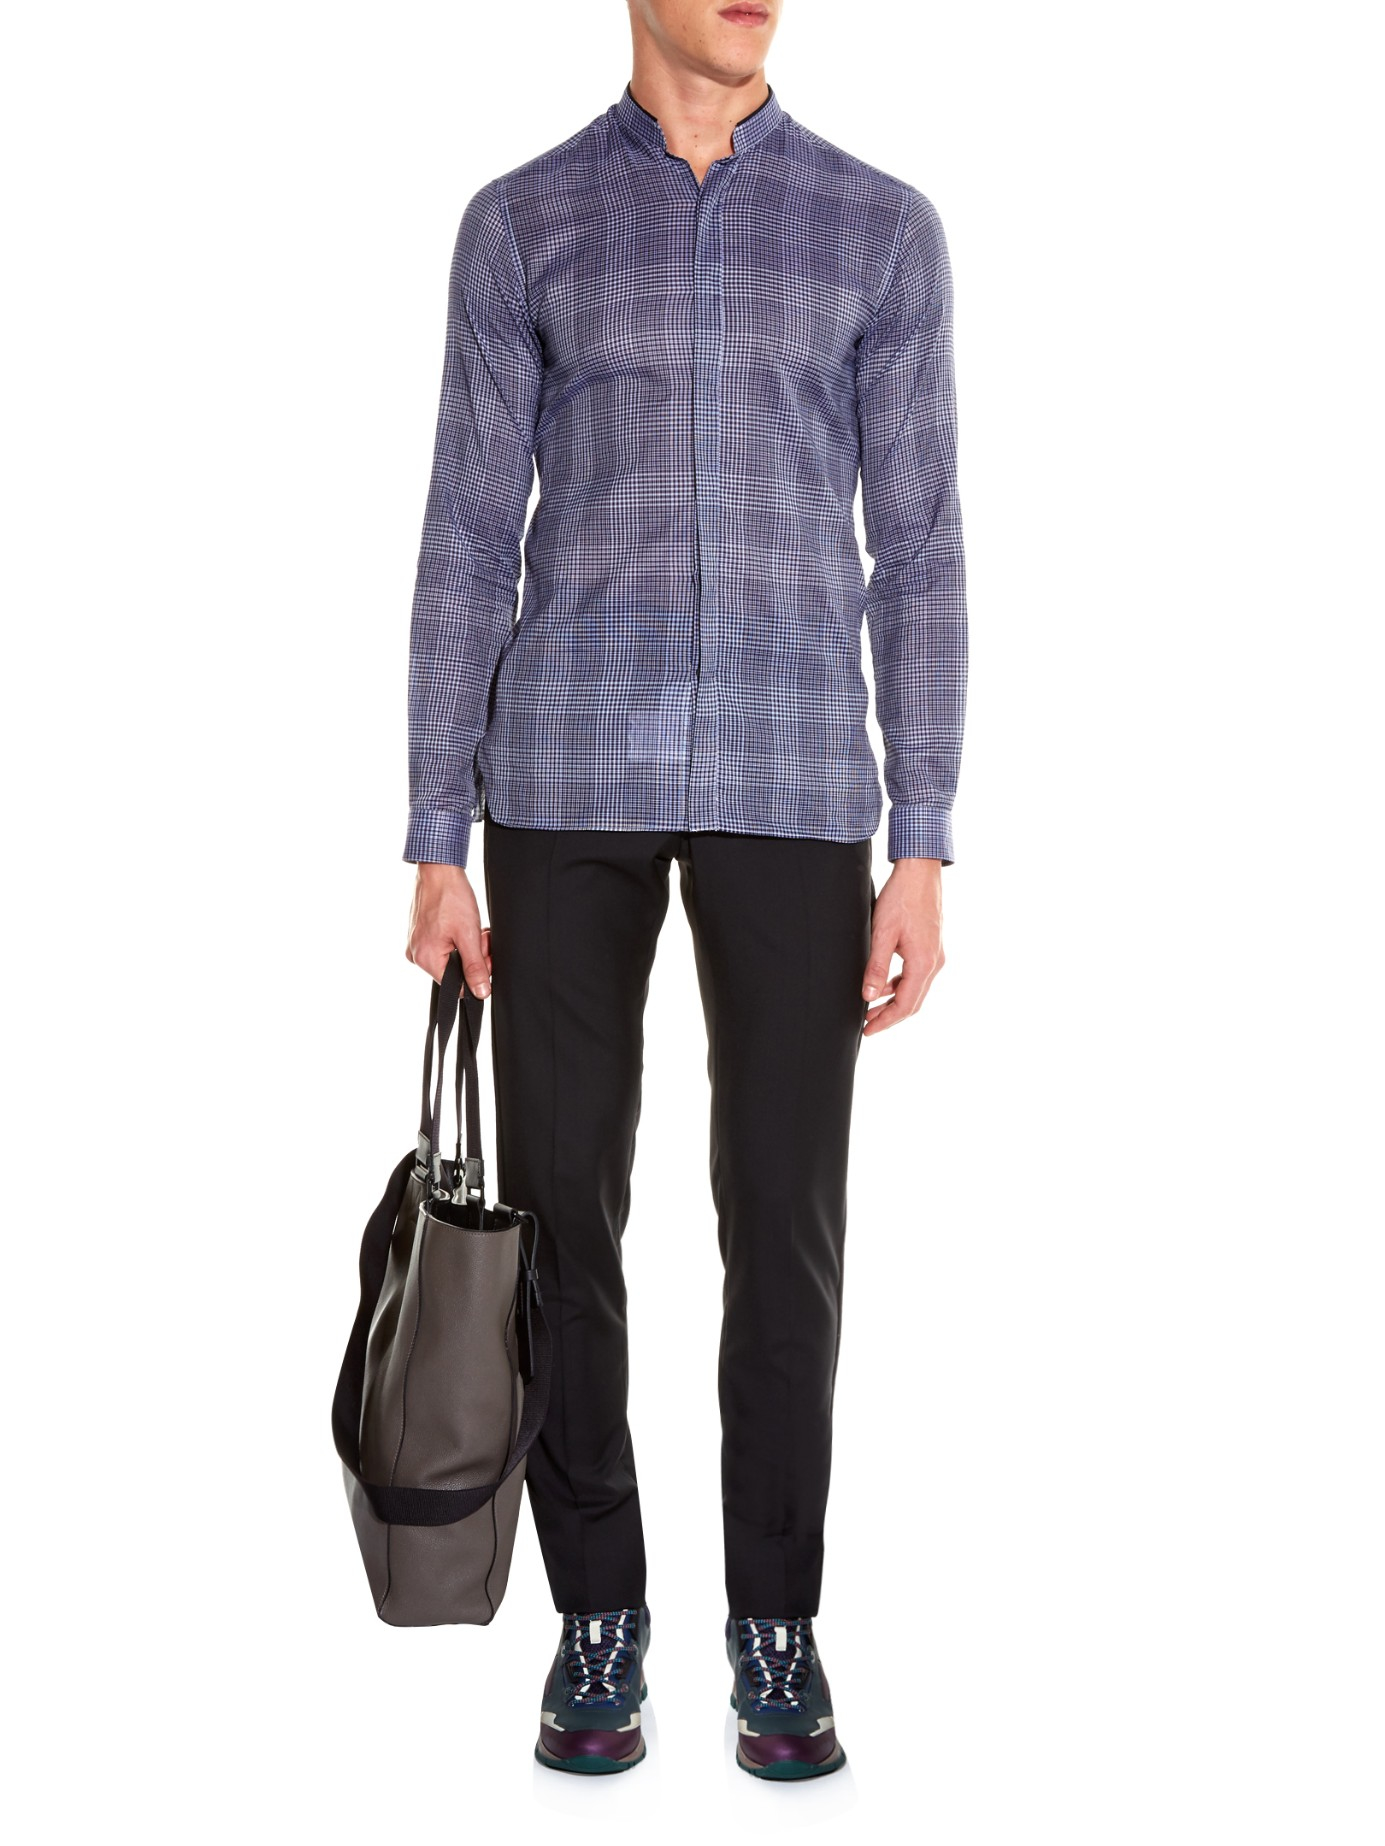 Stand Collar Shirts Designs : Lanvin stand collar checked shirt in blue for men lyst